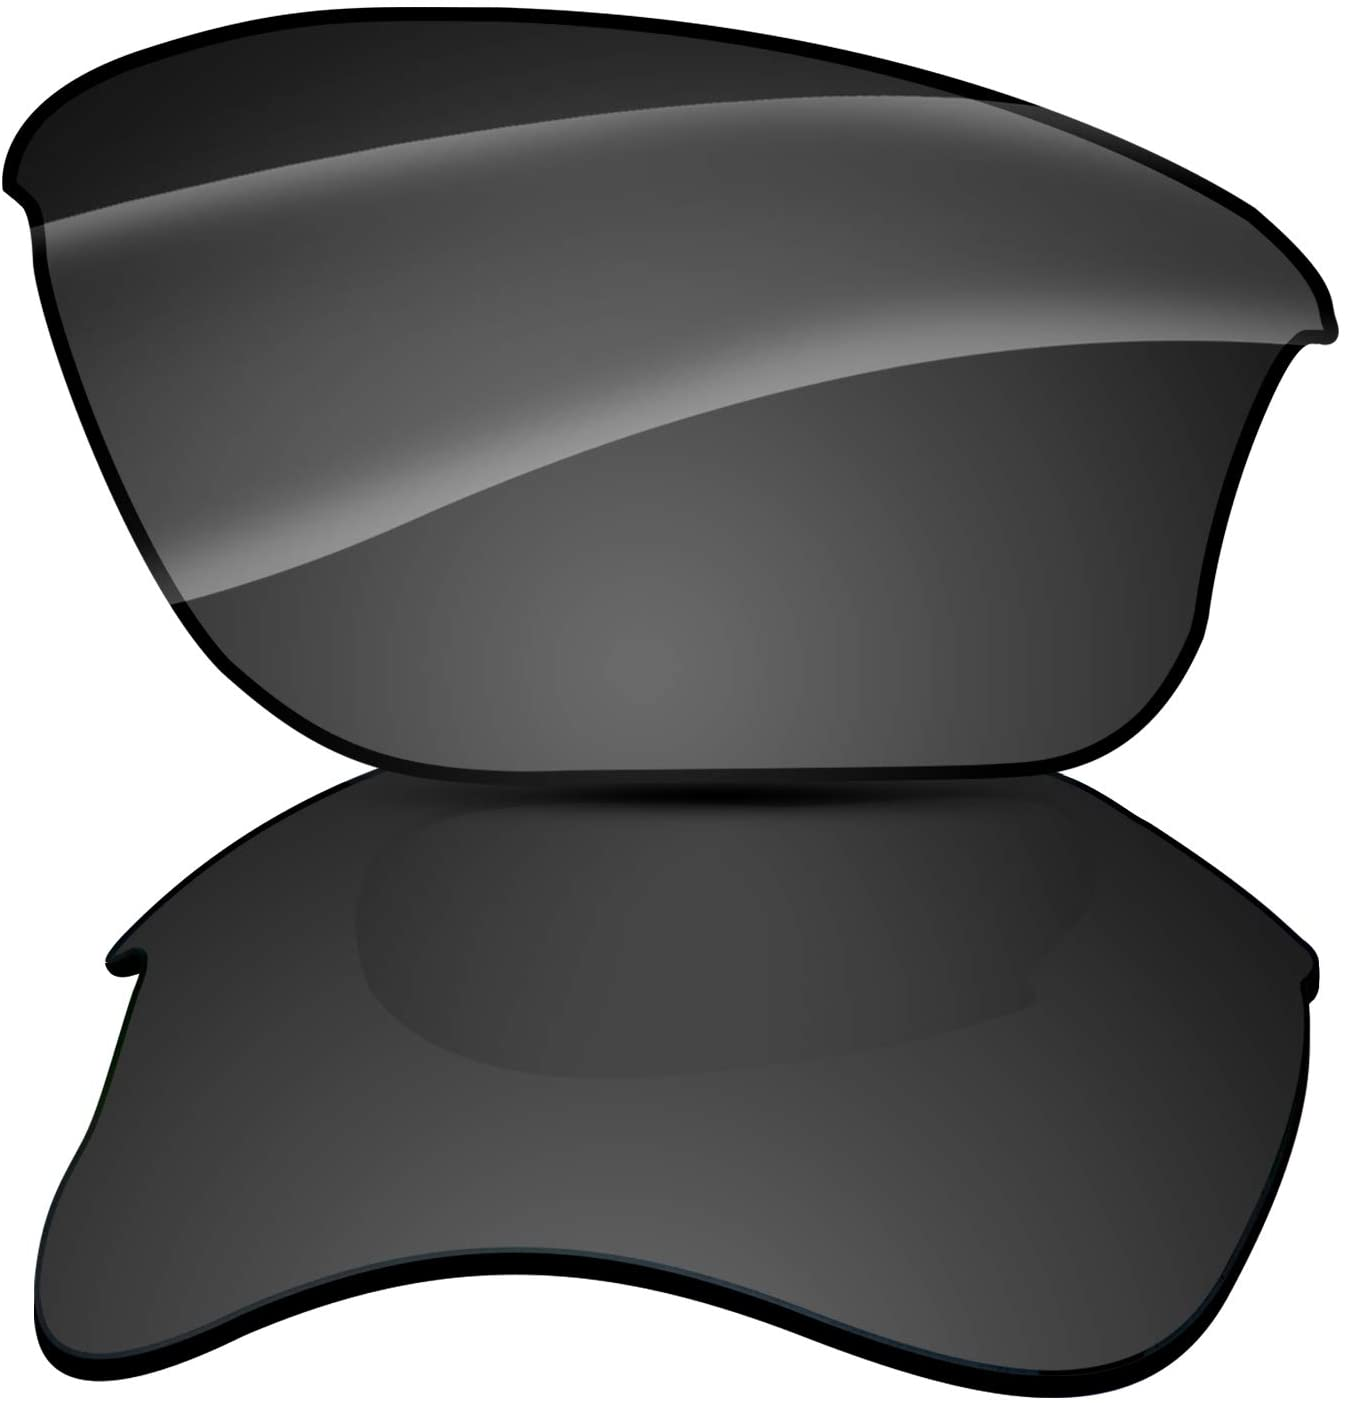 COOLENS Polarized Replacement Lenses for Oakley Half Jacket XLJ Sunglasses UV Protection